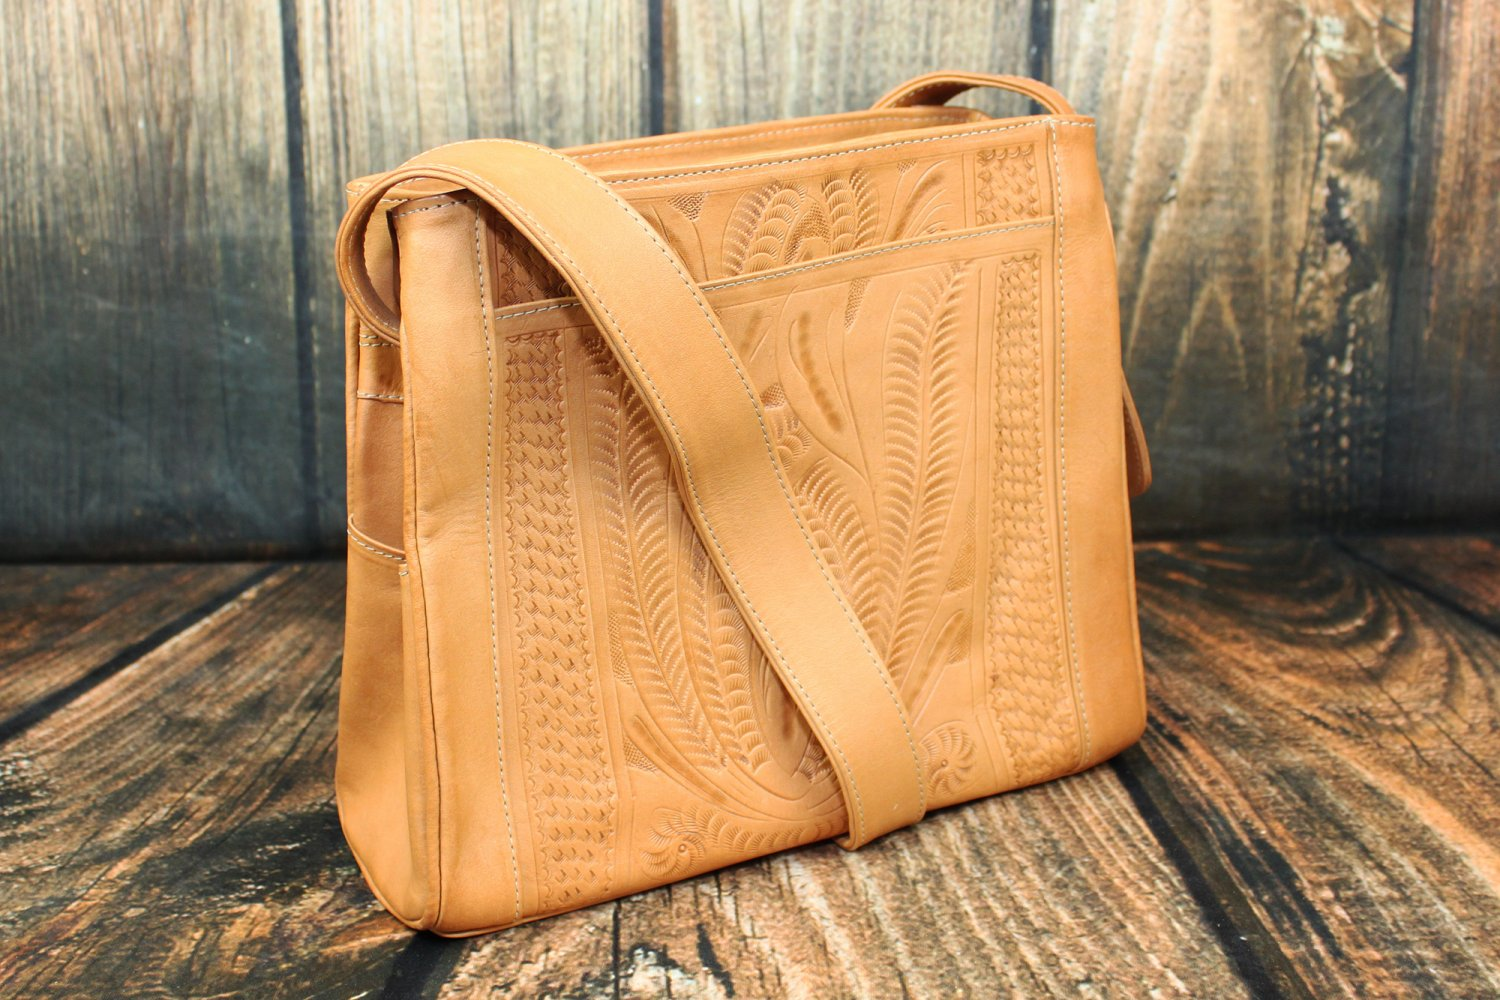 Ropin West Natural Tooled Leather Purse - RW978